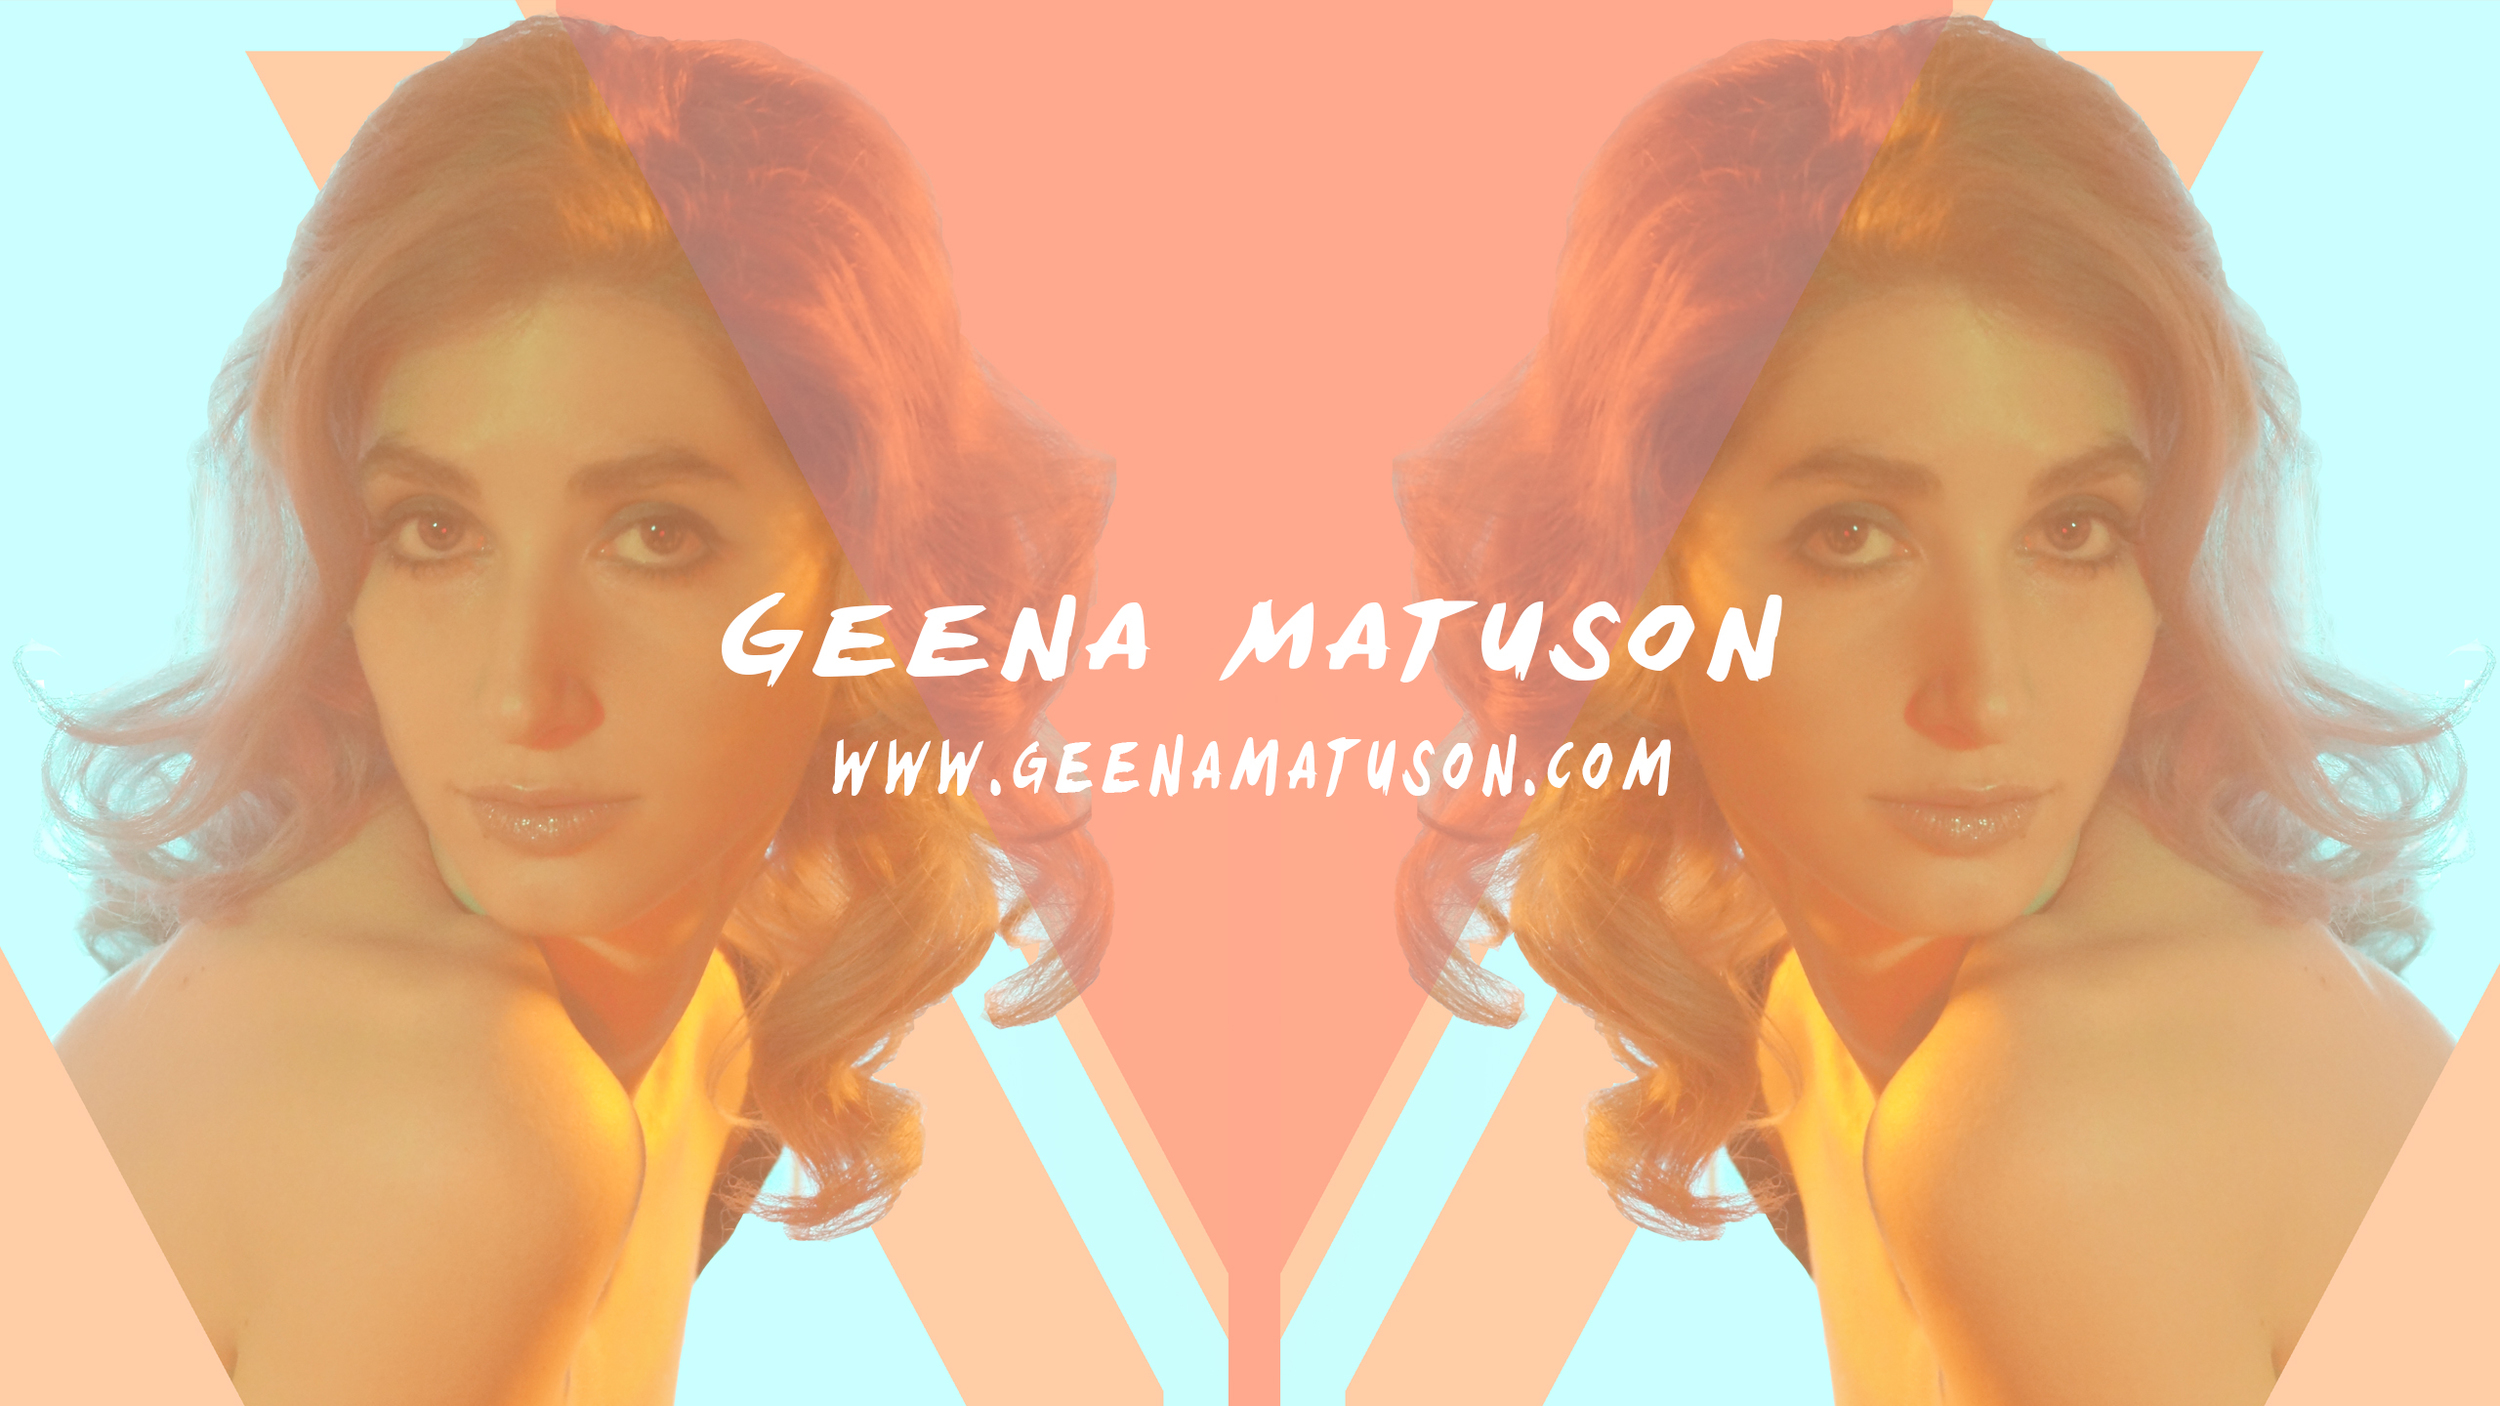 Geena Matuson's new branding on YouTube, 2015.